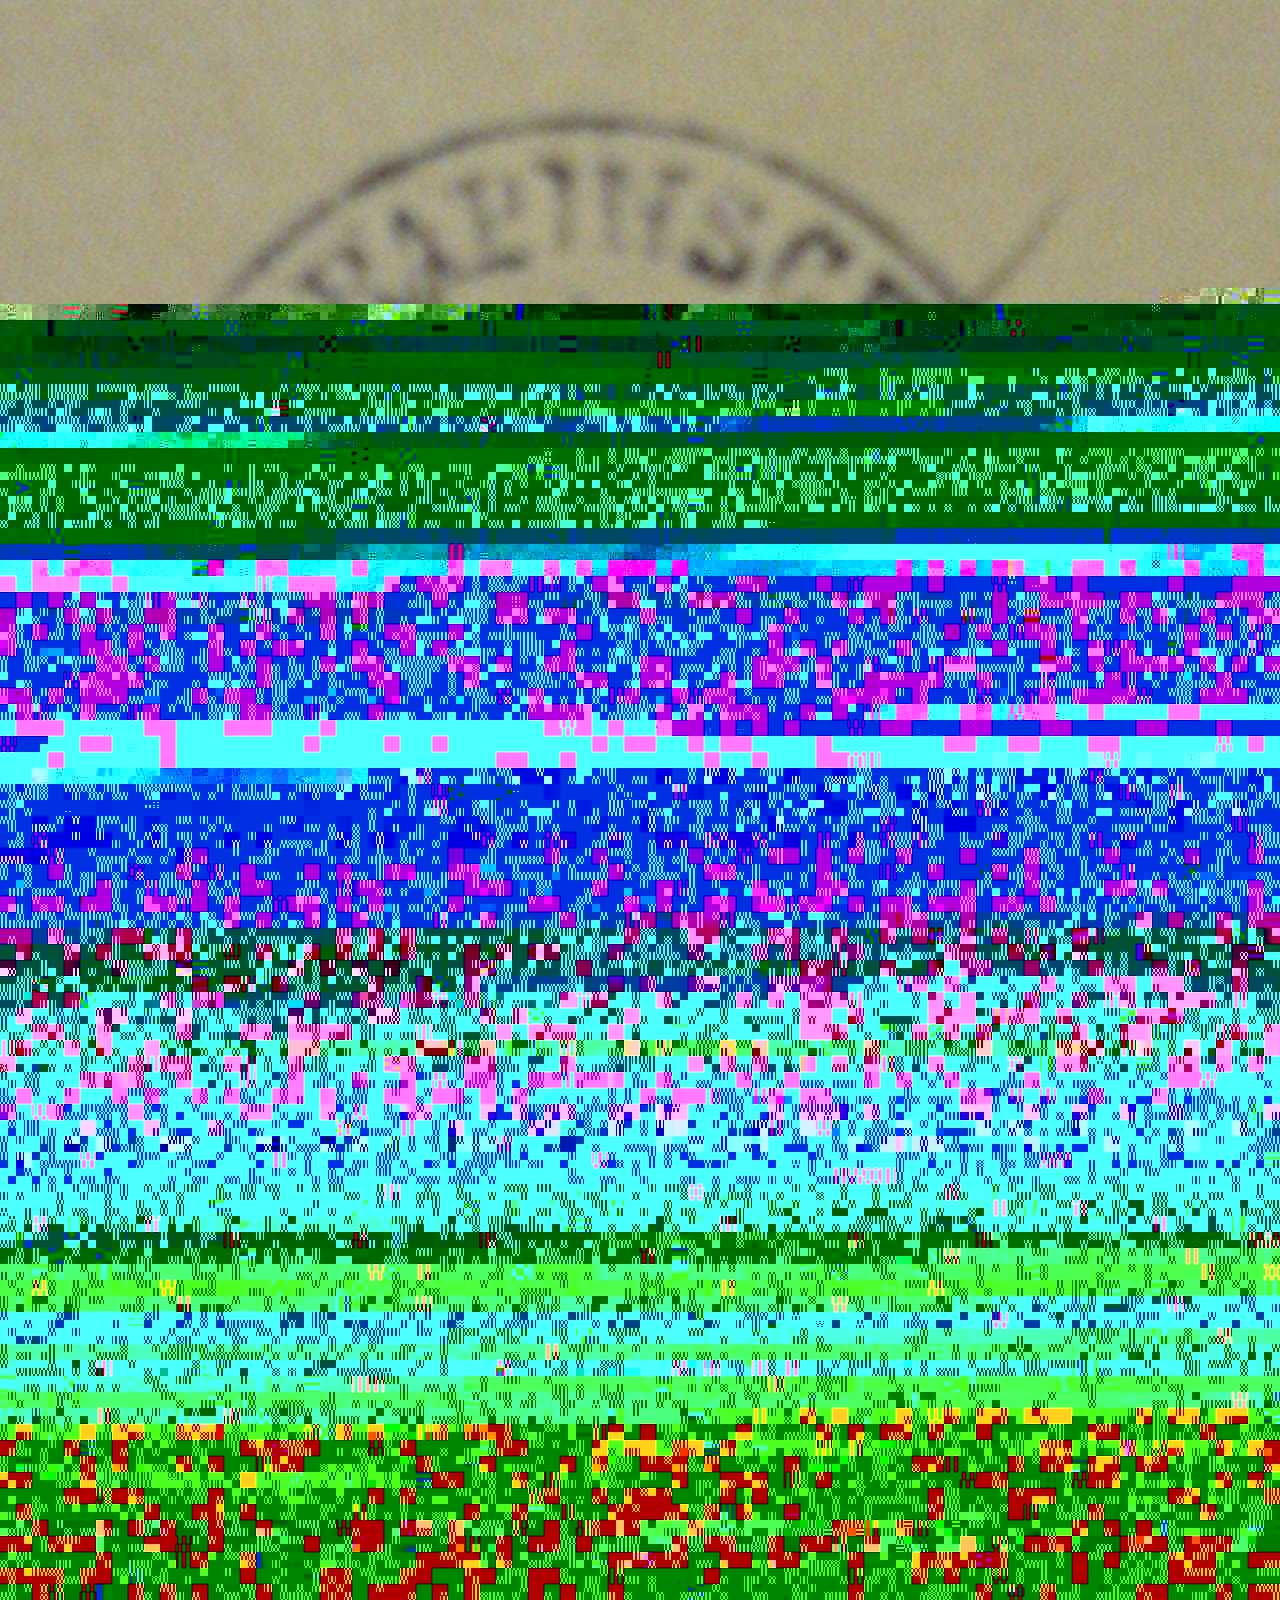 Result of a failed data recovery from a Hard disk drive.